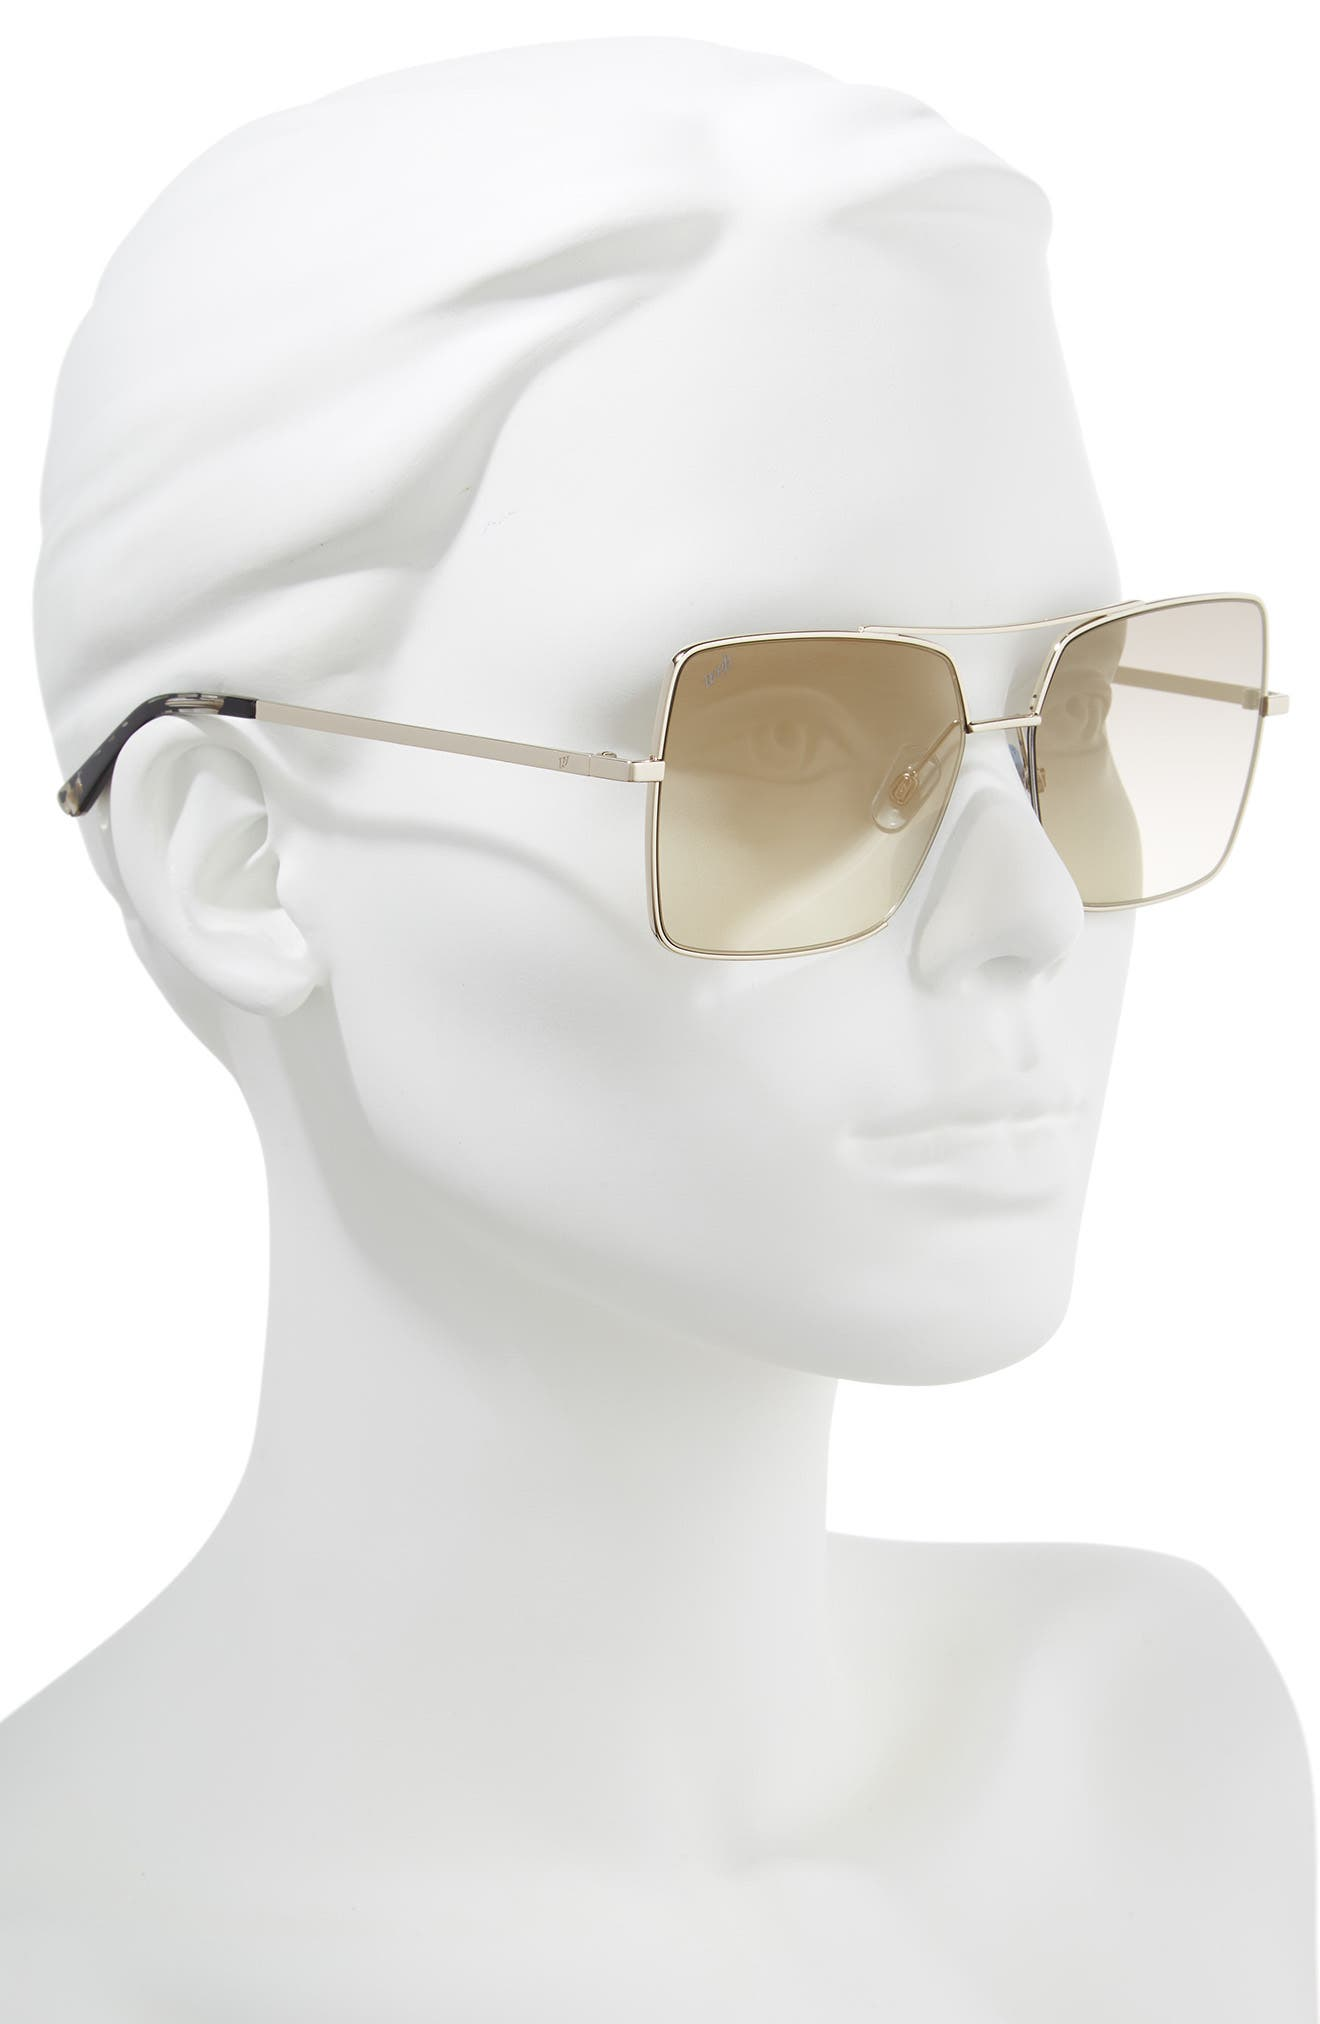 57mm Square Metal Aviator Sunglasses,                             Alternate thumbnail 2, color,                             GOLD/ BROWN